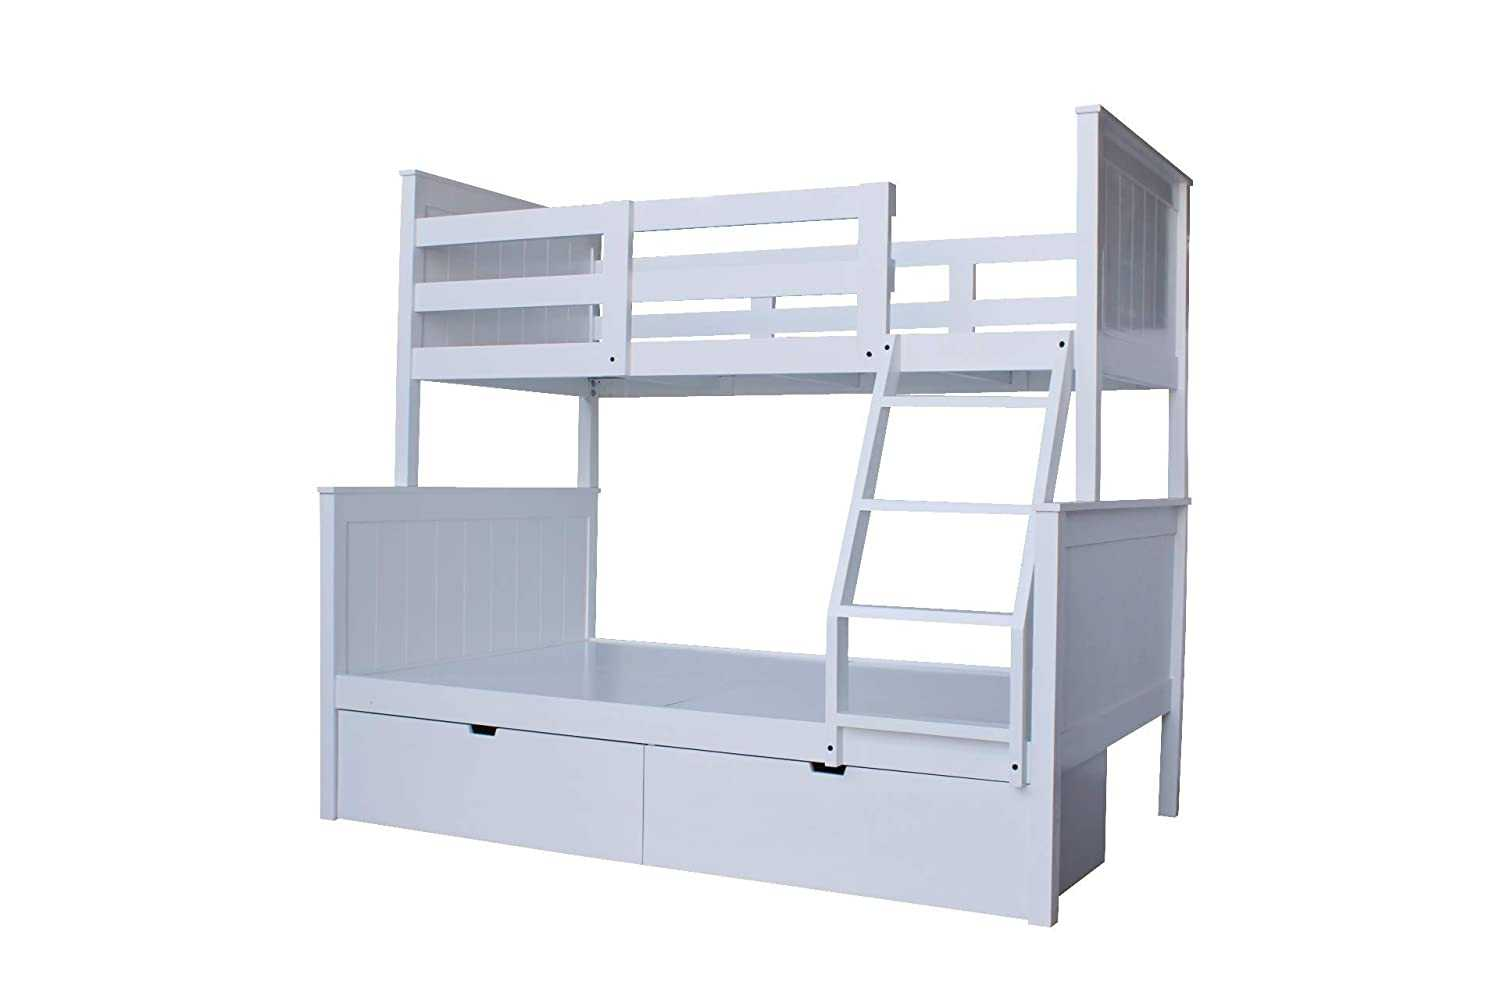 Kibube Adult bunk bed design  with 2 Drawers for Storage (grey Finish)